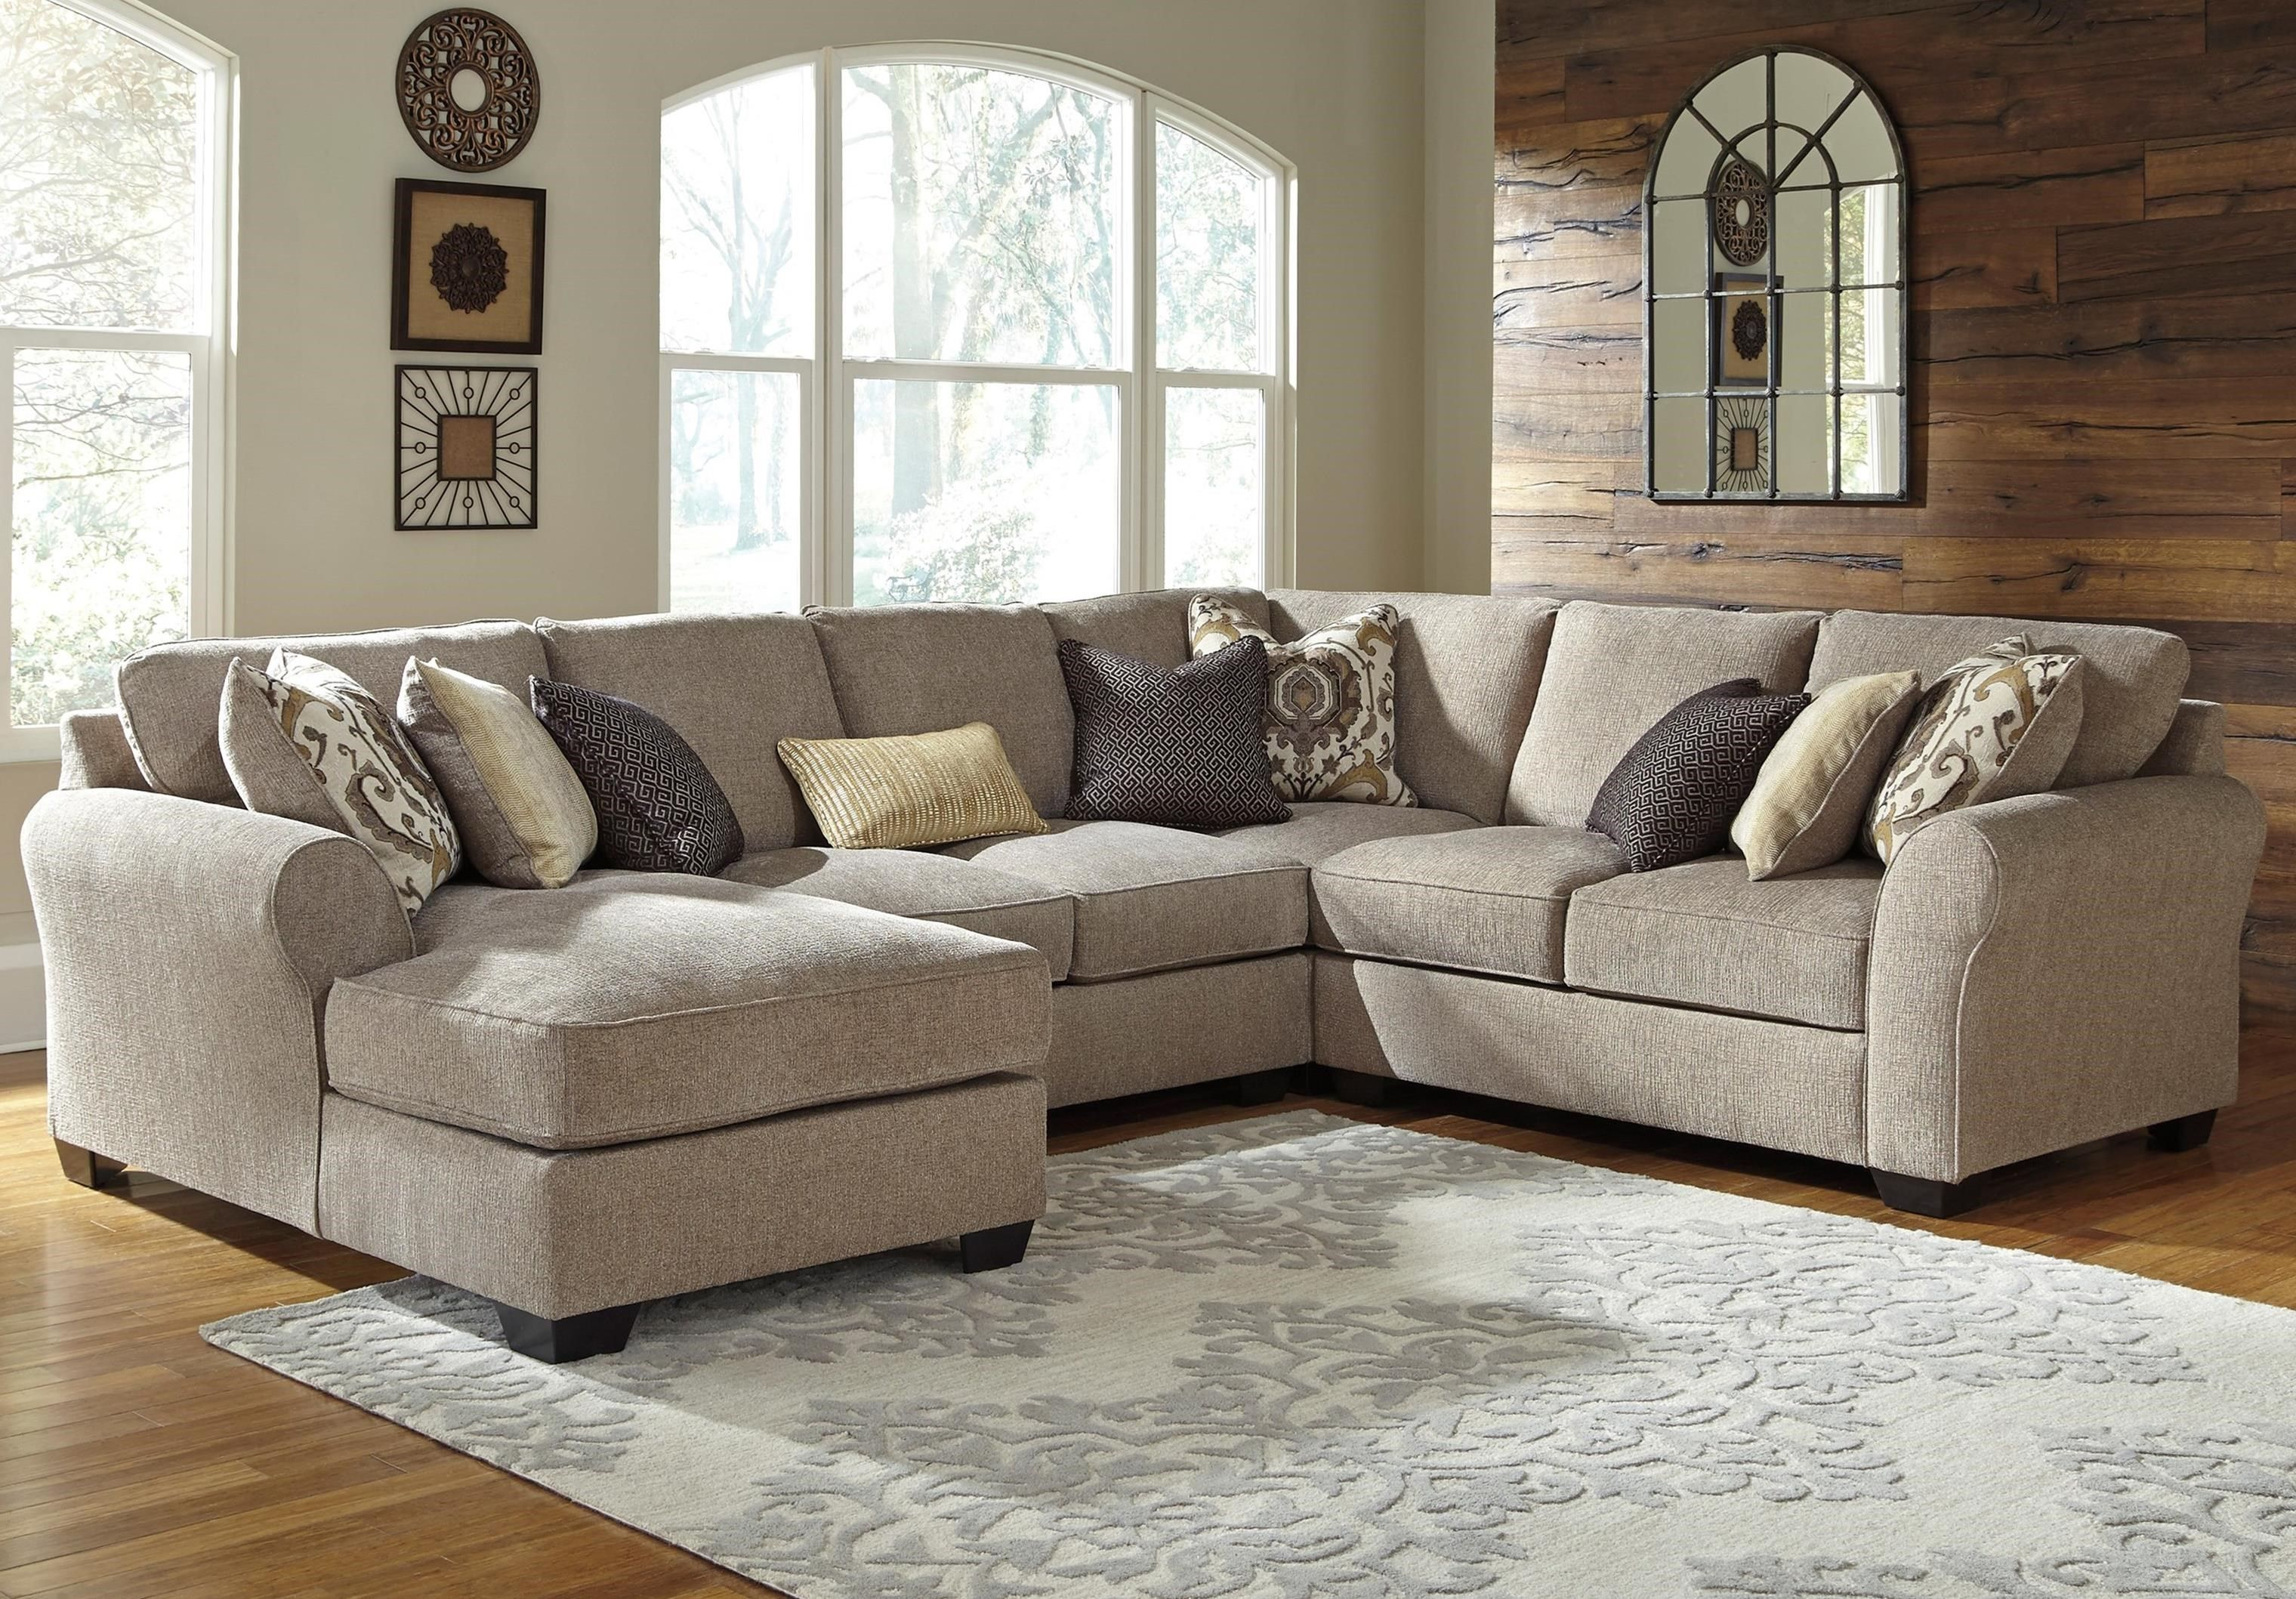 Pantomine 4 Piece Sectional With Left Chaise By Benchcraft Living Room Furniture City Furniture Sectional Sofa Couch